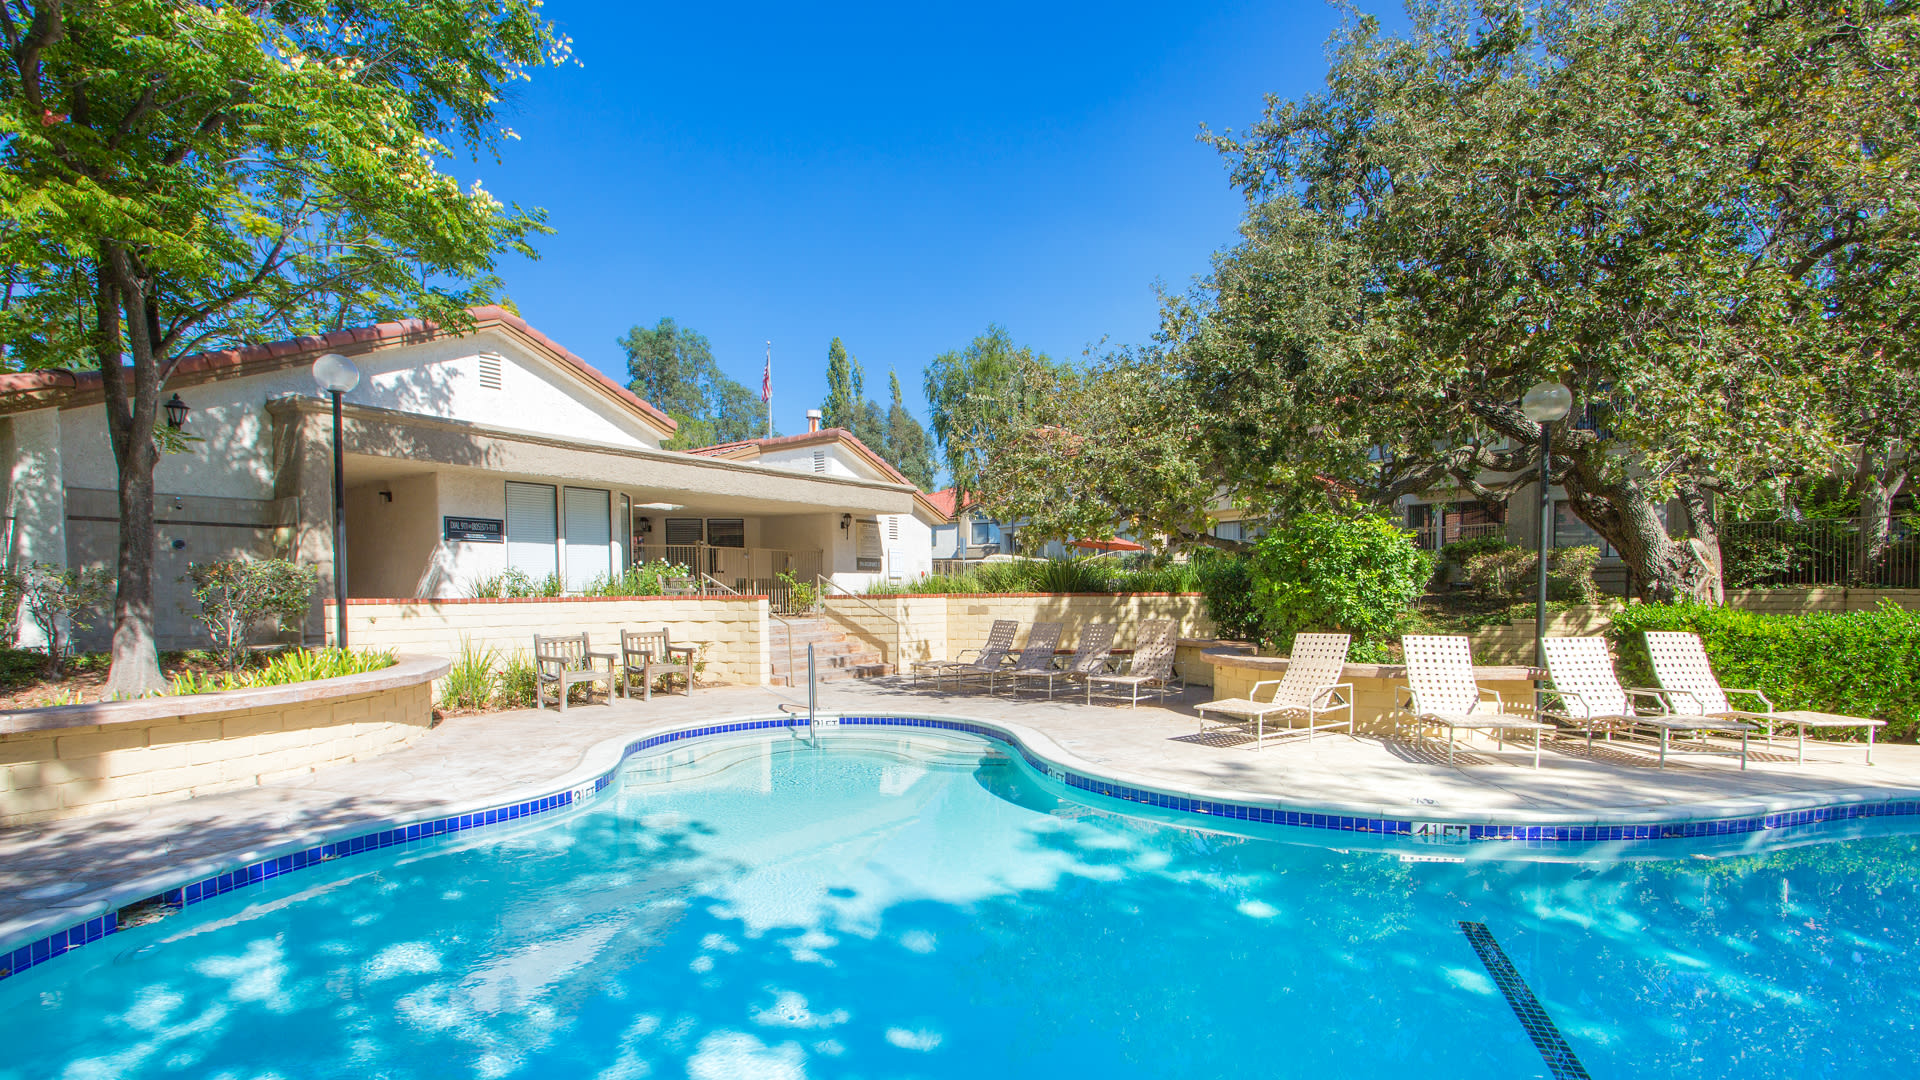 Country Oaks Apartments - Swimming Pool